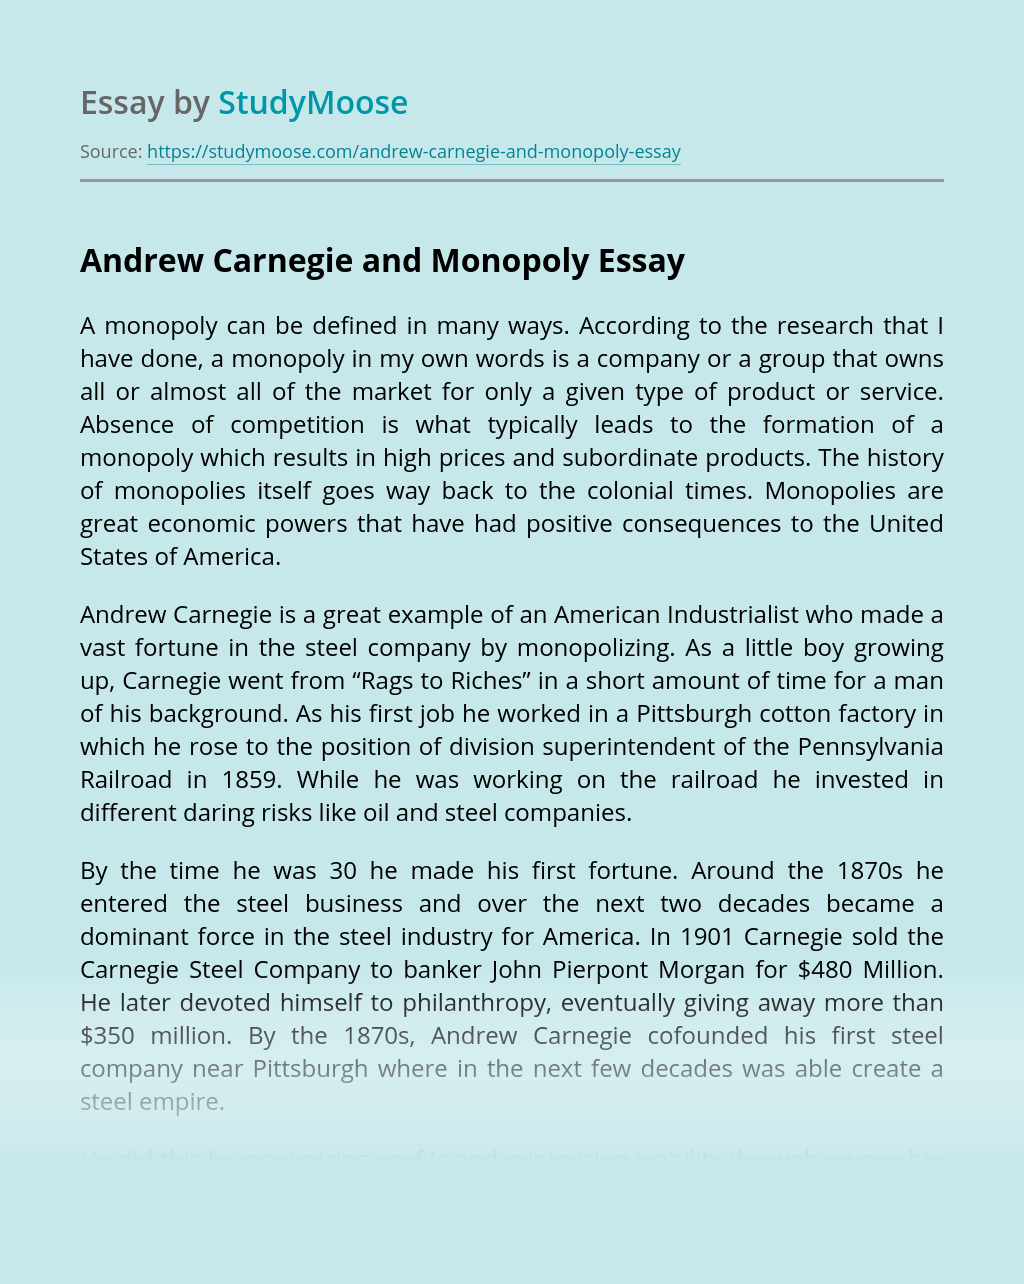 Andrew Carnegie and Monopoly